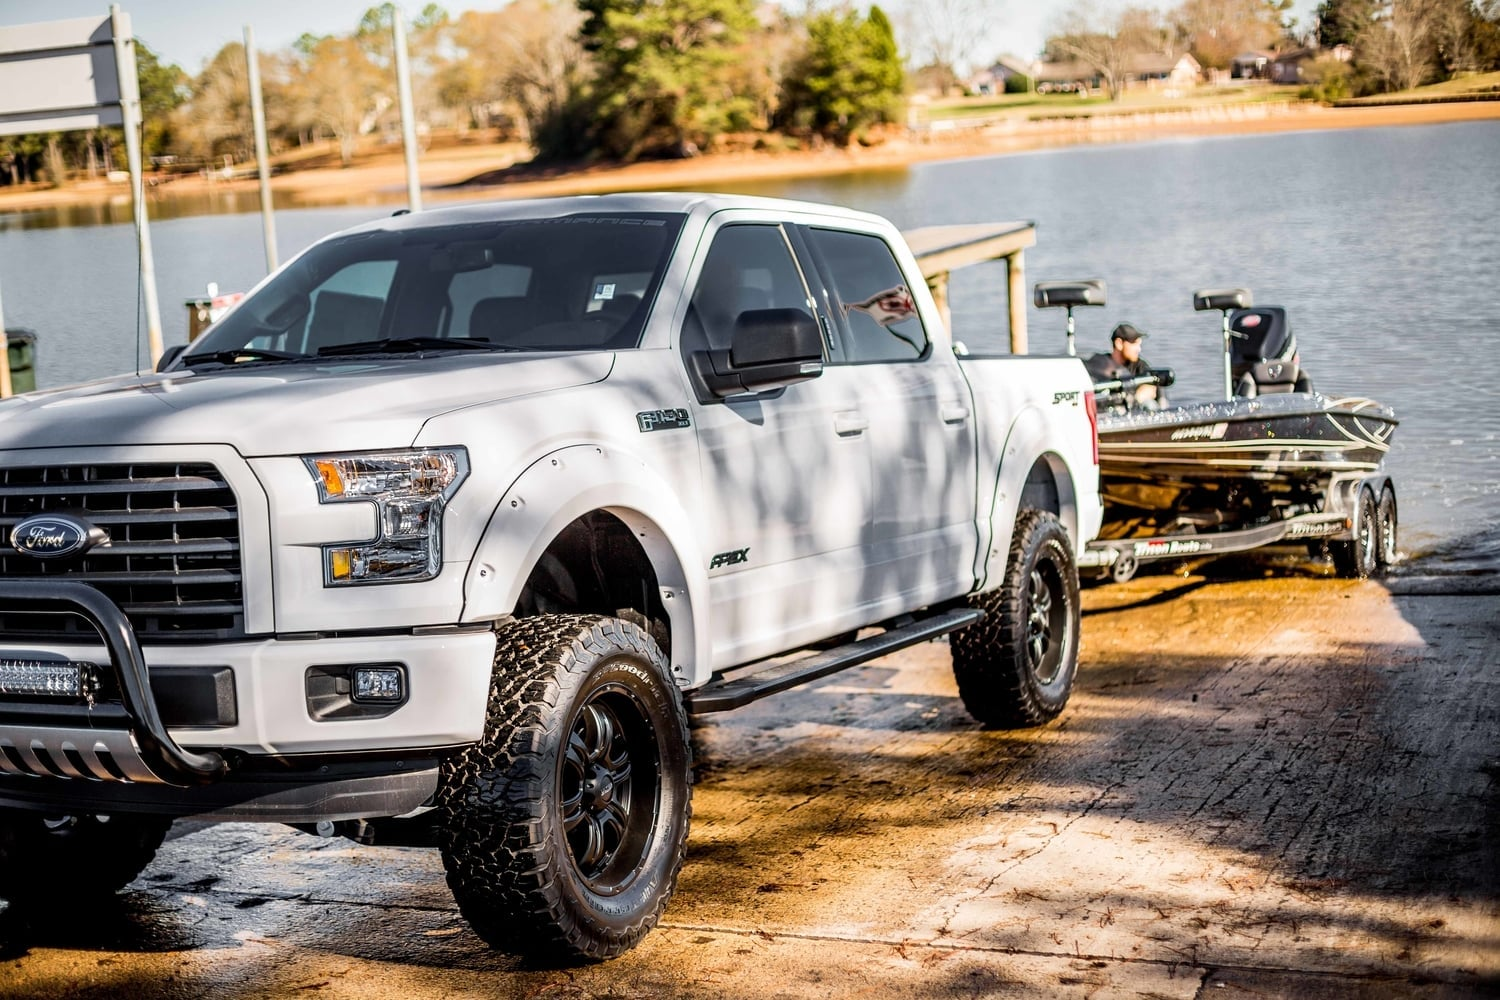 SCA Performance Vehicles Michigan | Stillwell Ford